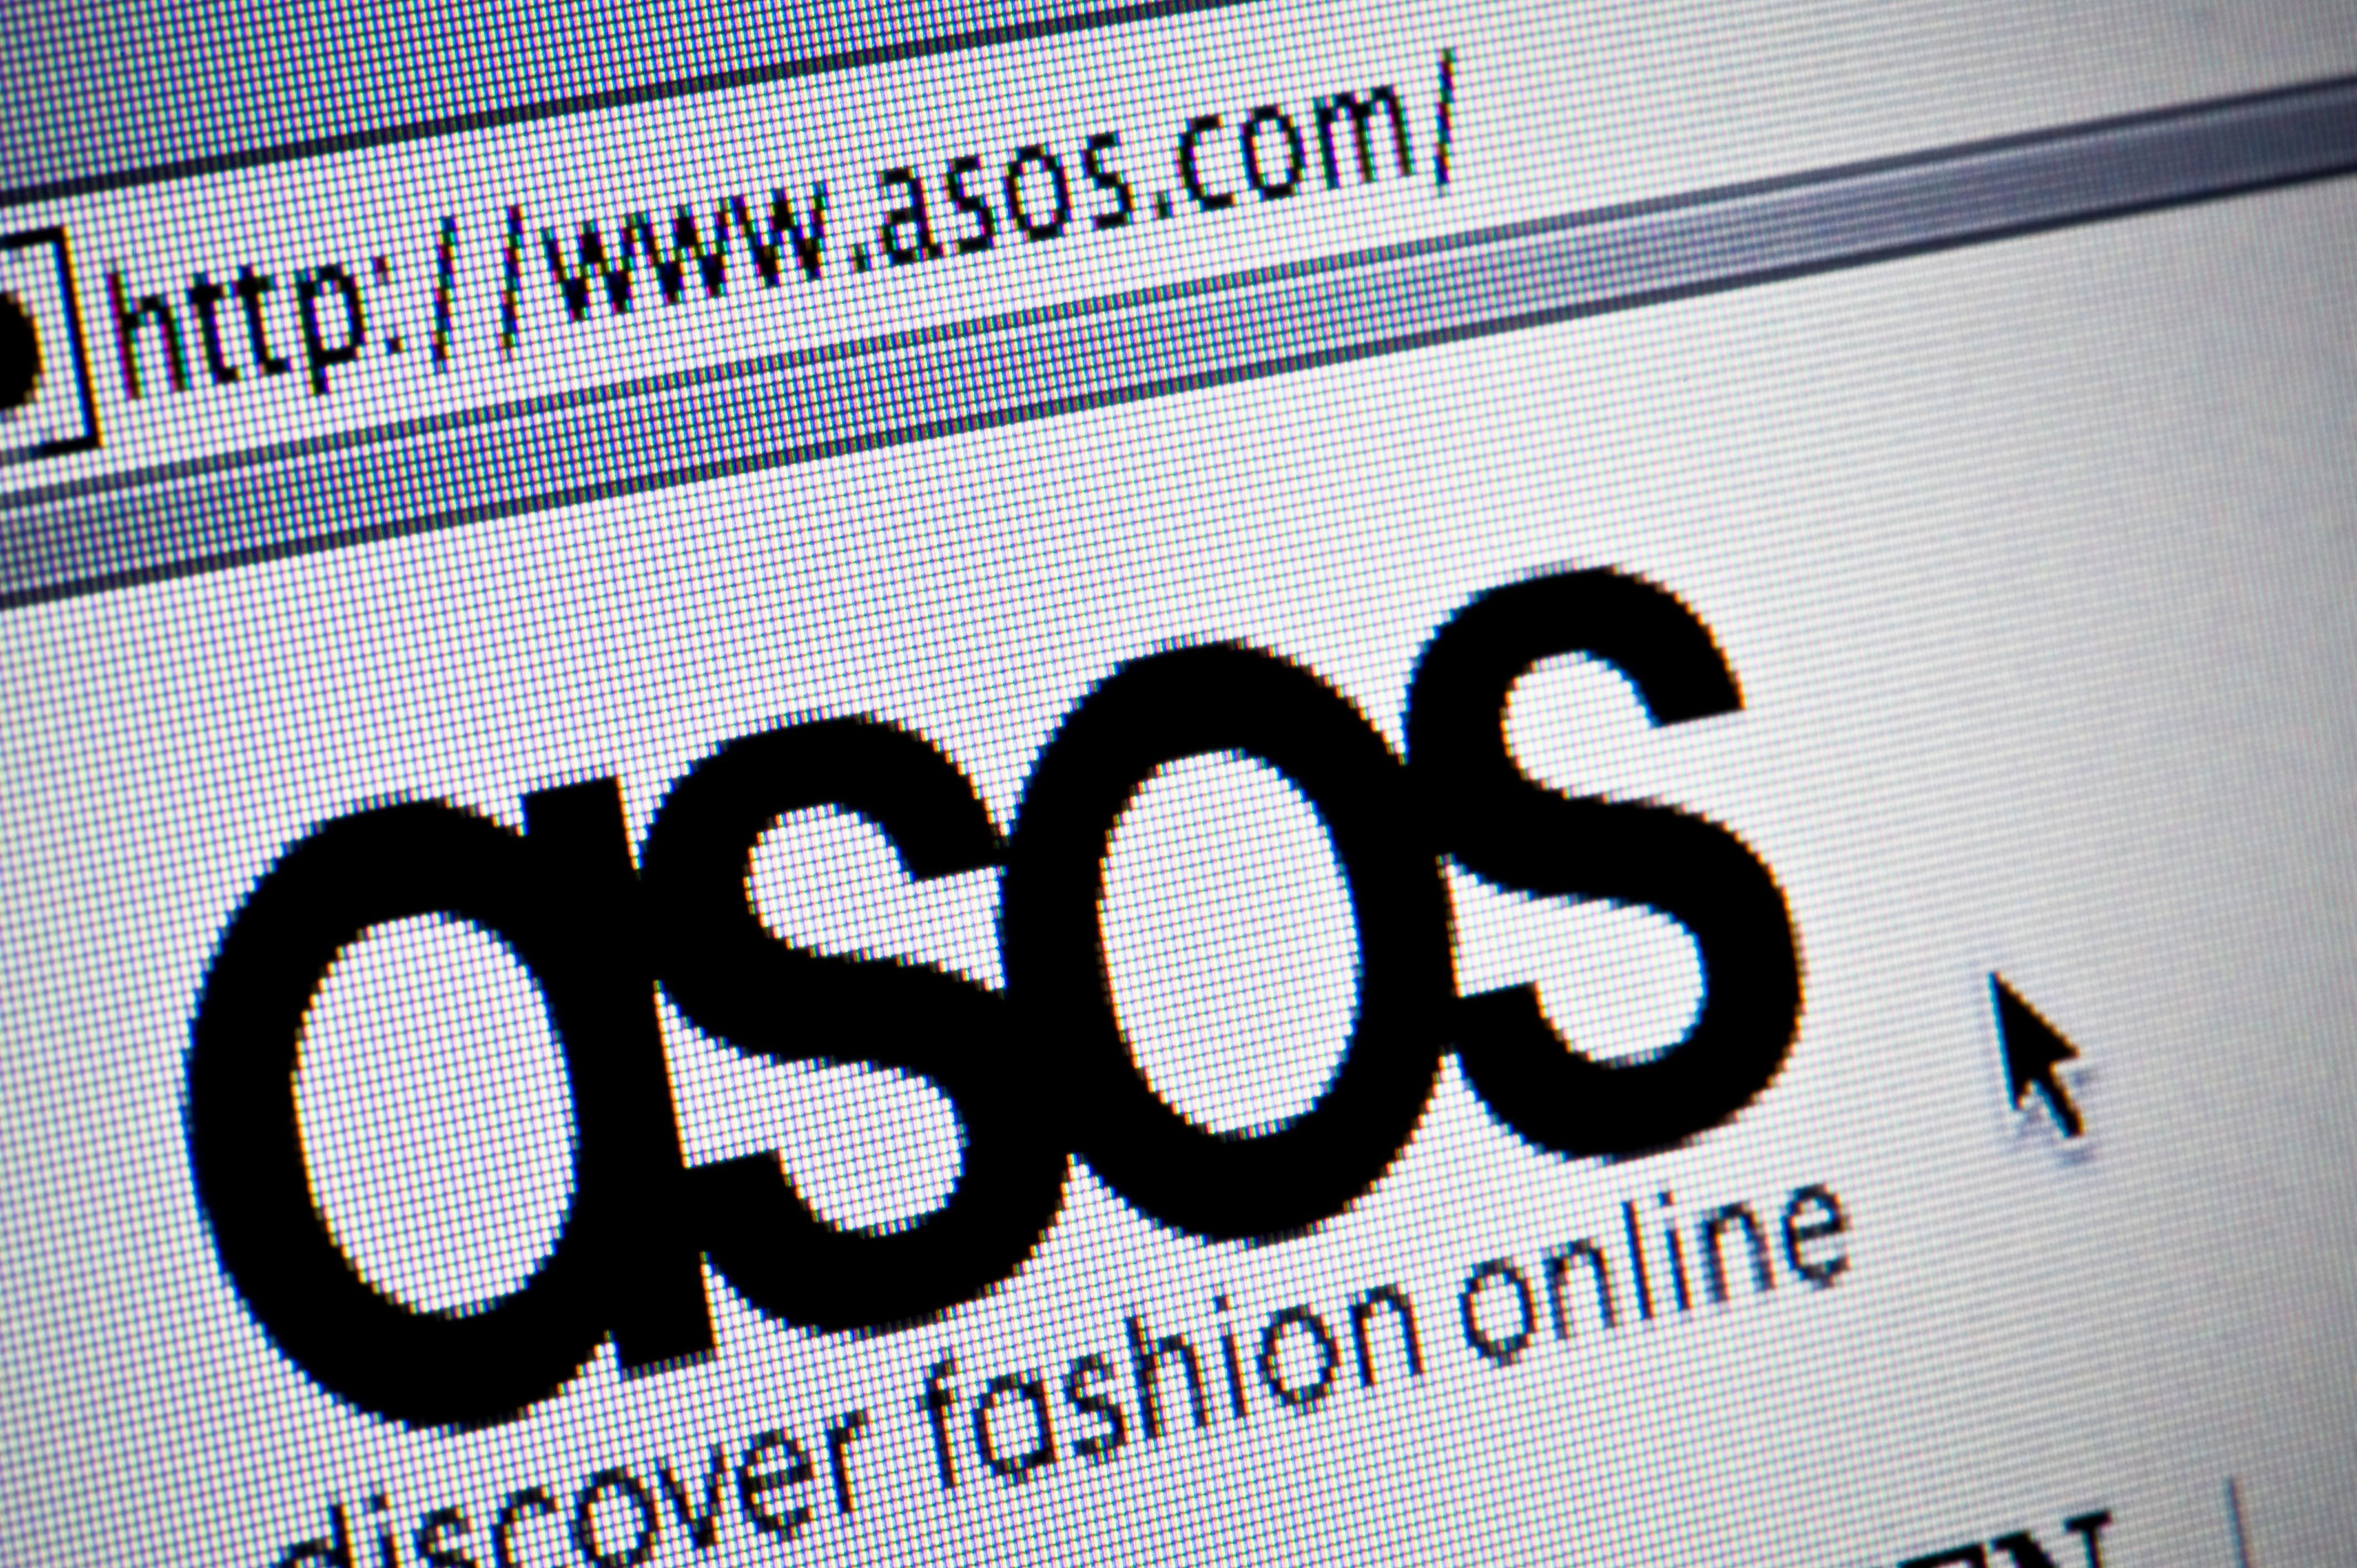 Asos are blasted for 'dangerous' size 2 clothing with a tiny 22-inch waist… but some customers have leapt to their defence